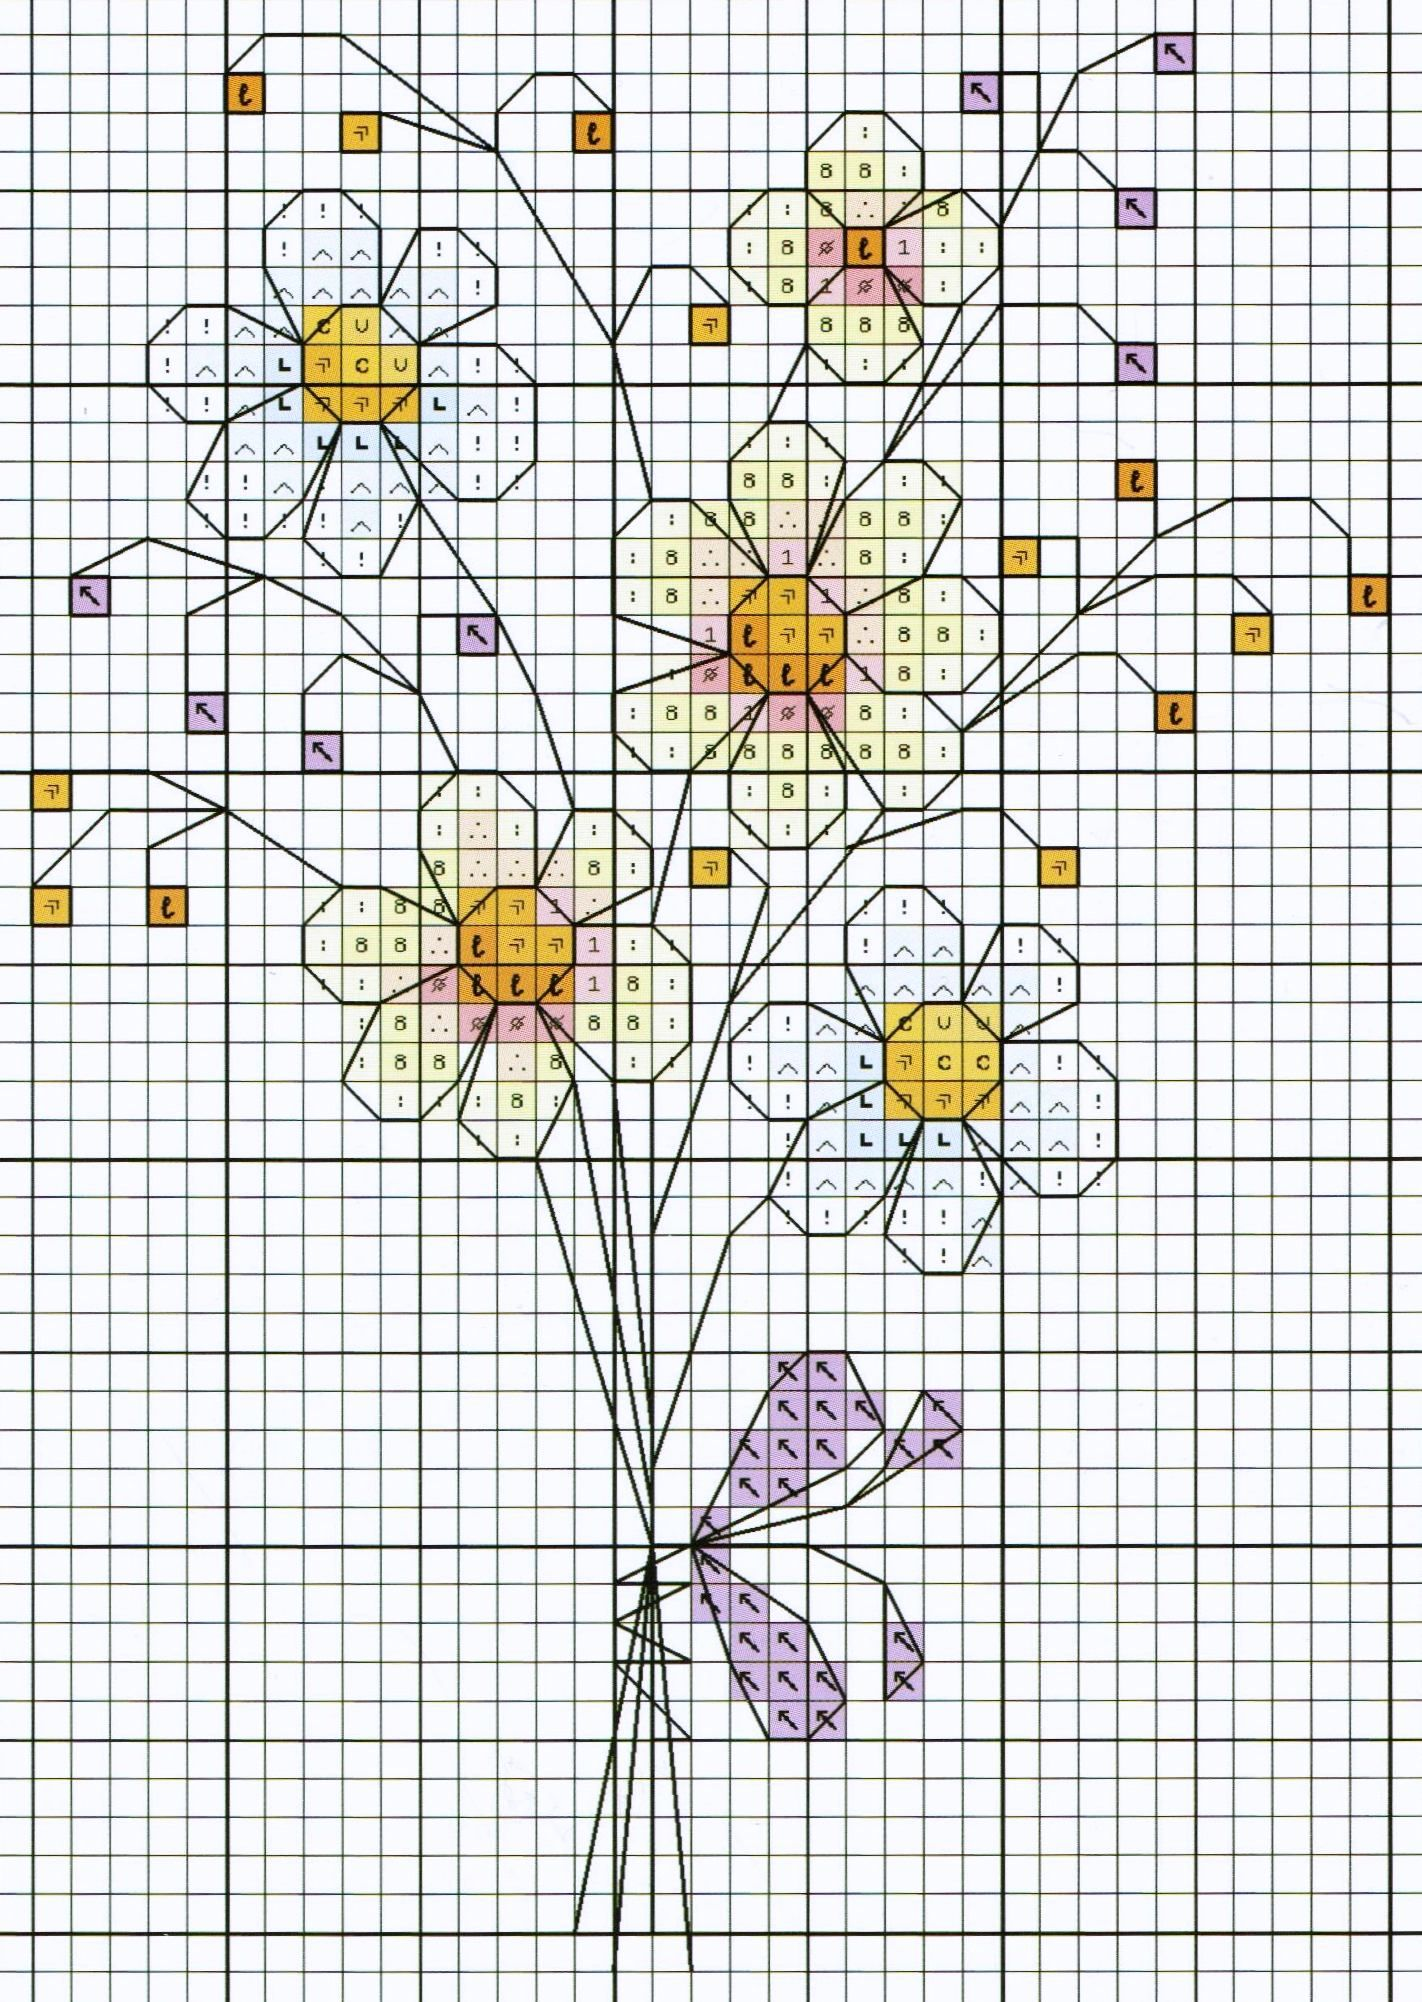 'Bunch of Flowers' from Michael Powell's 'Mini Cross Stitch' book (paperback, pub. Search Press). There are twenty to make and they are all very quirky and appealing. I have made most of the pictures in this book for someone or other and they are a real pleasure to work on. My attempt at this design can be found at https://uk.pinterest.com/pin/504614333230834236/